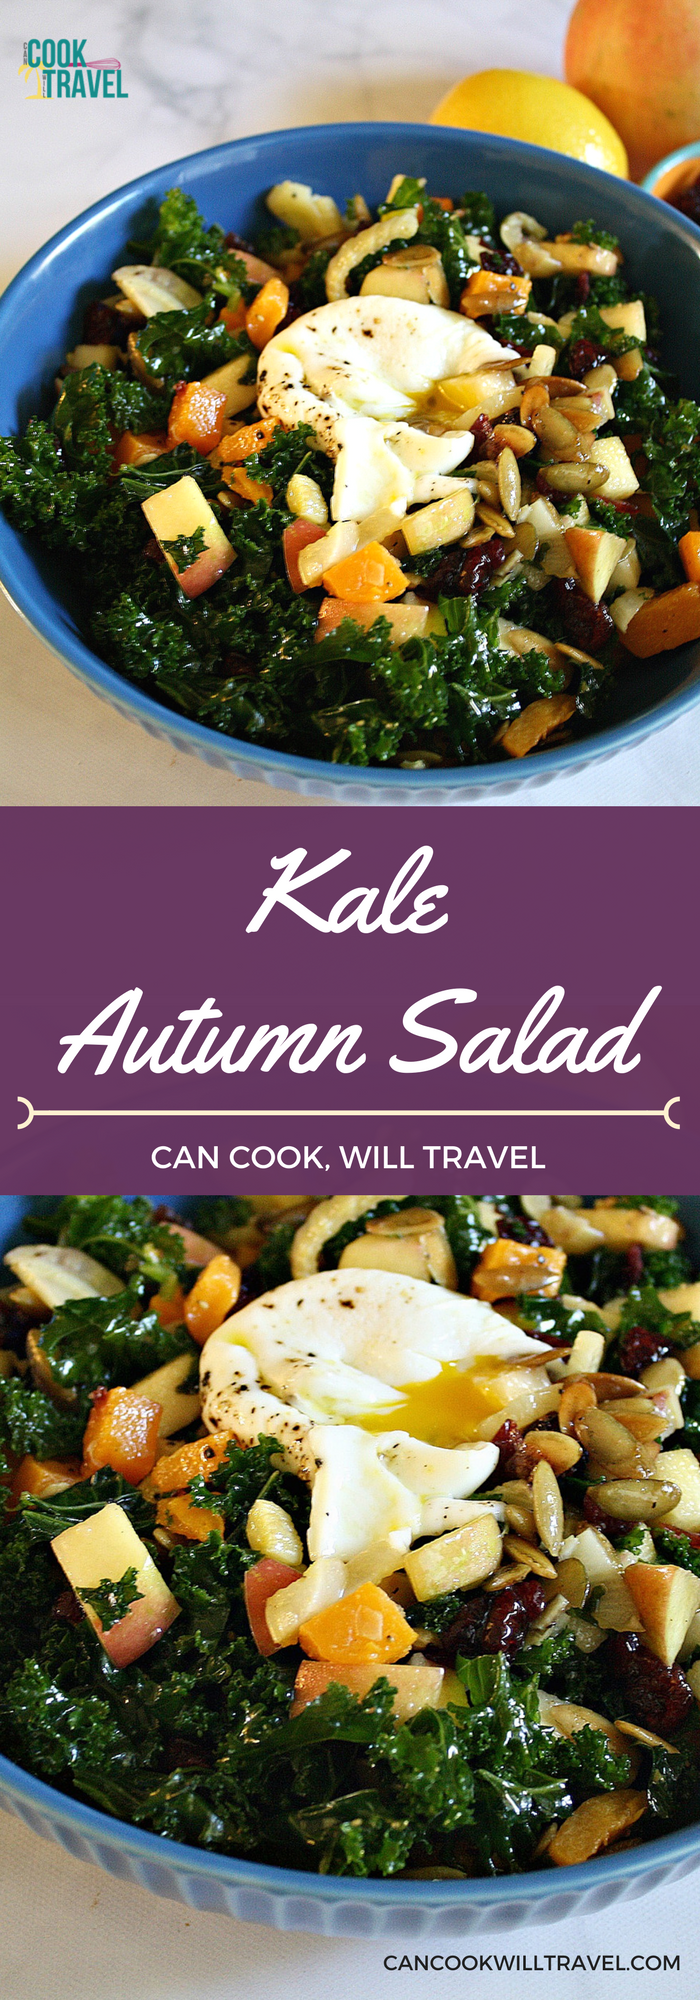 Kale Autumn Salad_Collage1